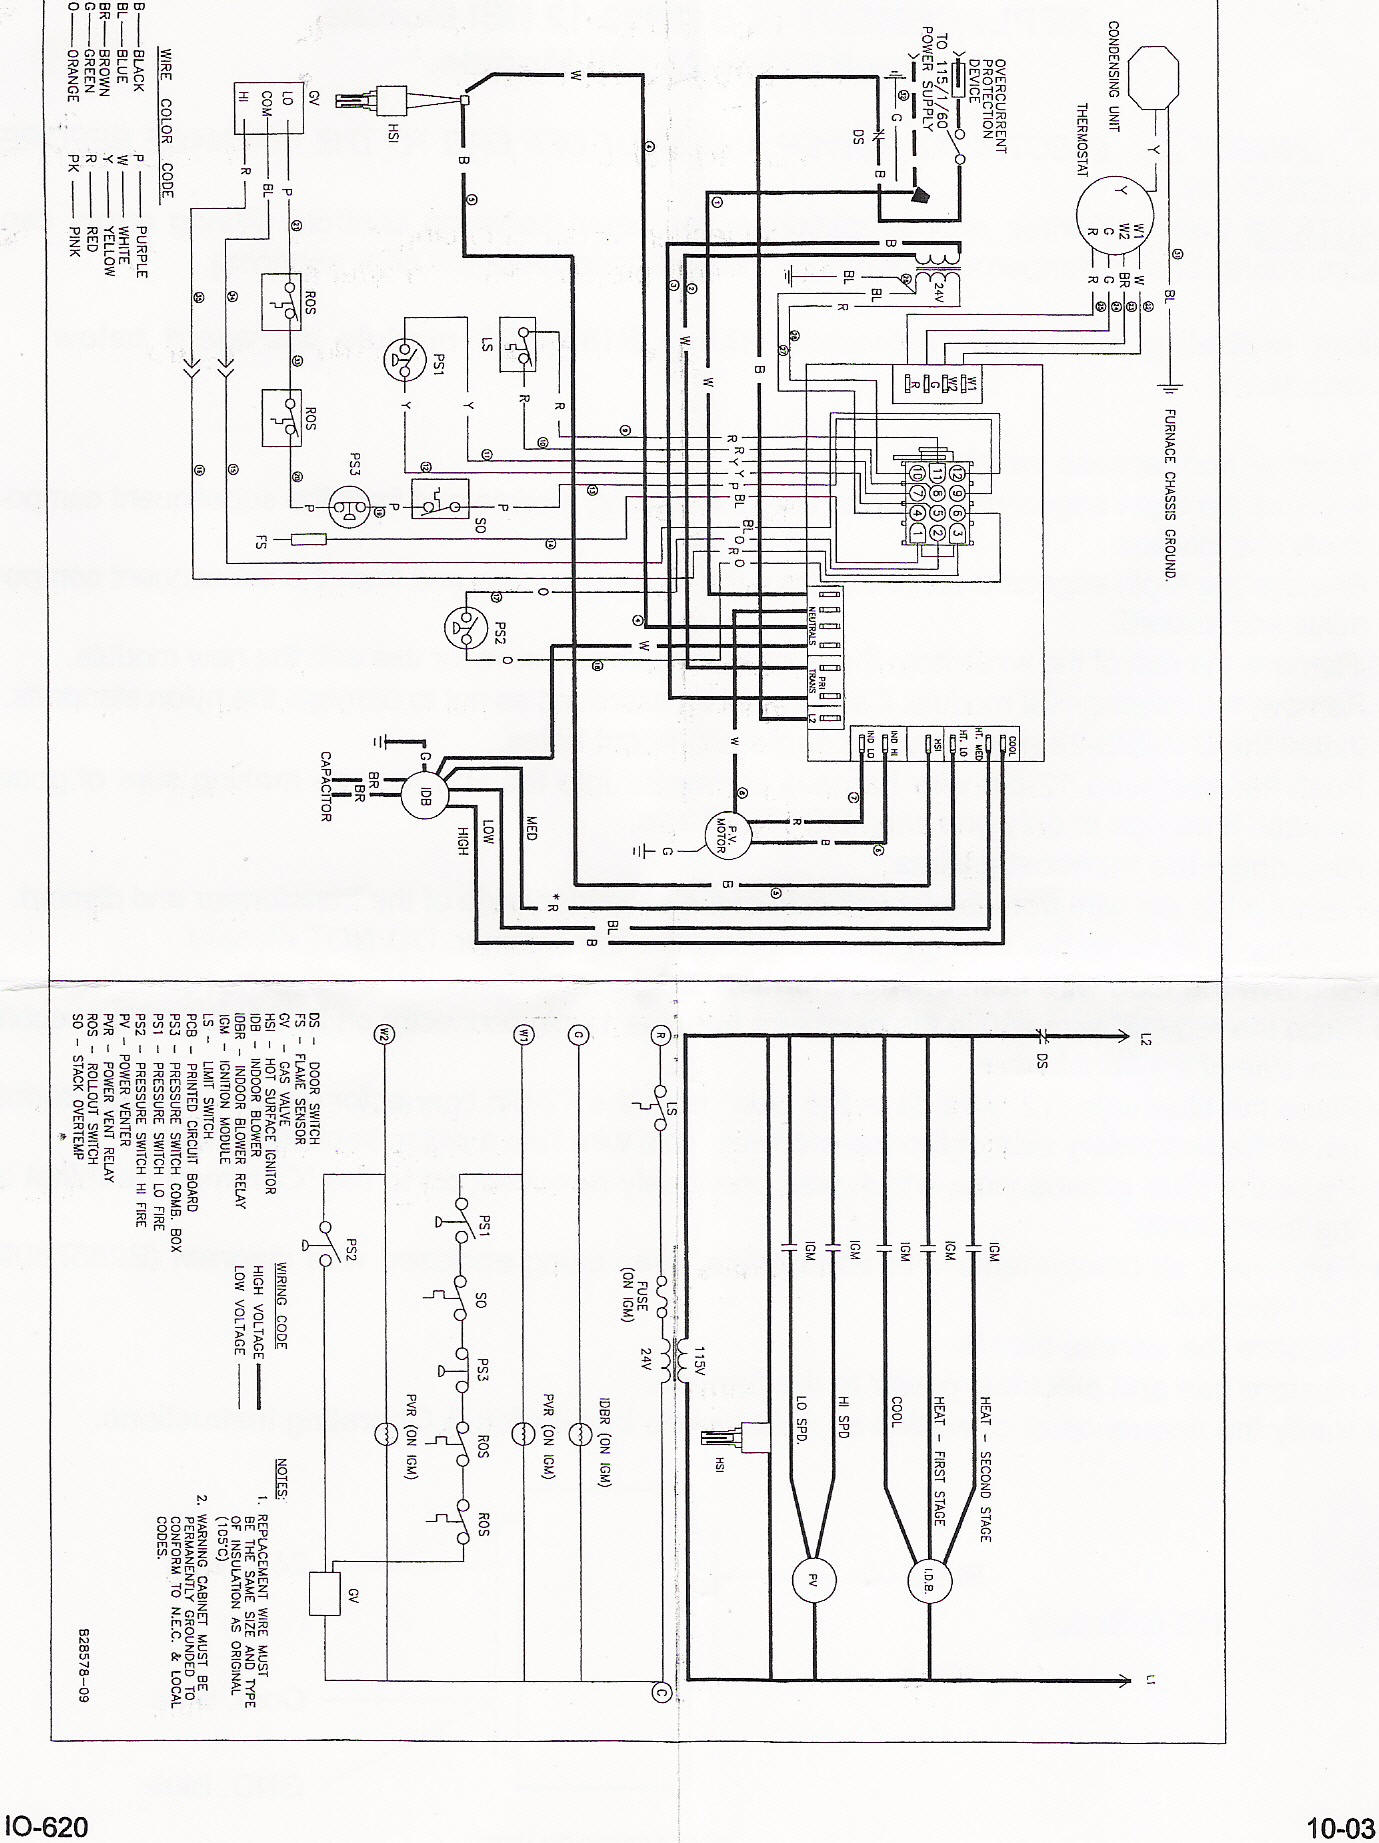 Ruud control board wiring diagram wiring diagrams schematics goodman control board b18099 23 instructions ruud control board wiring diagram 1 ruud control board wiring diagram sciox Images